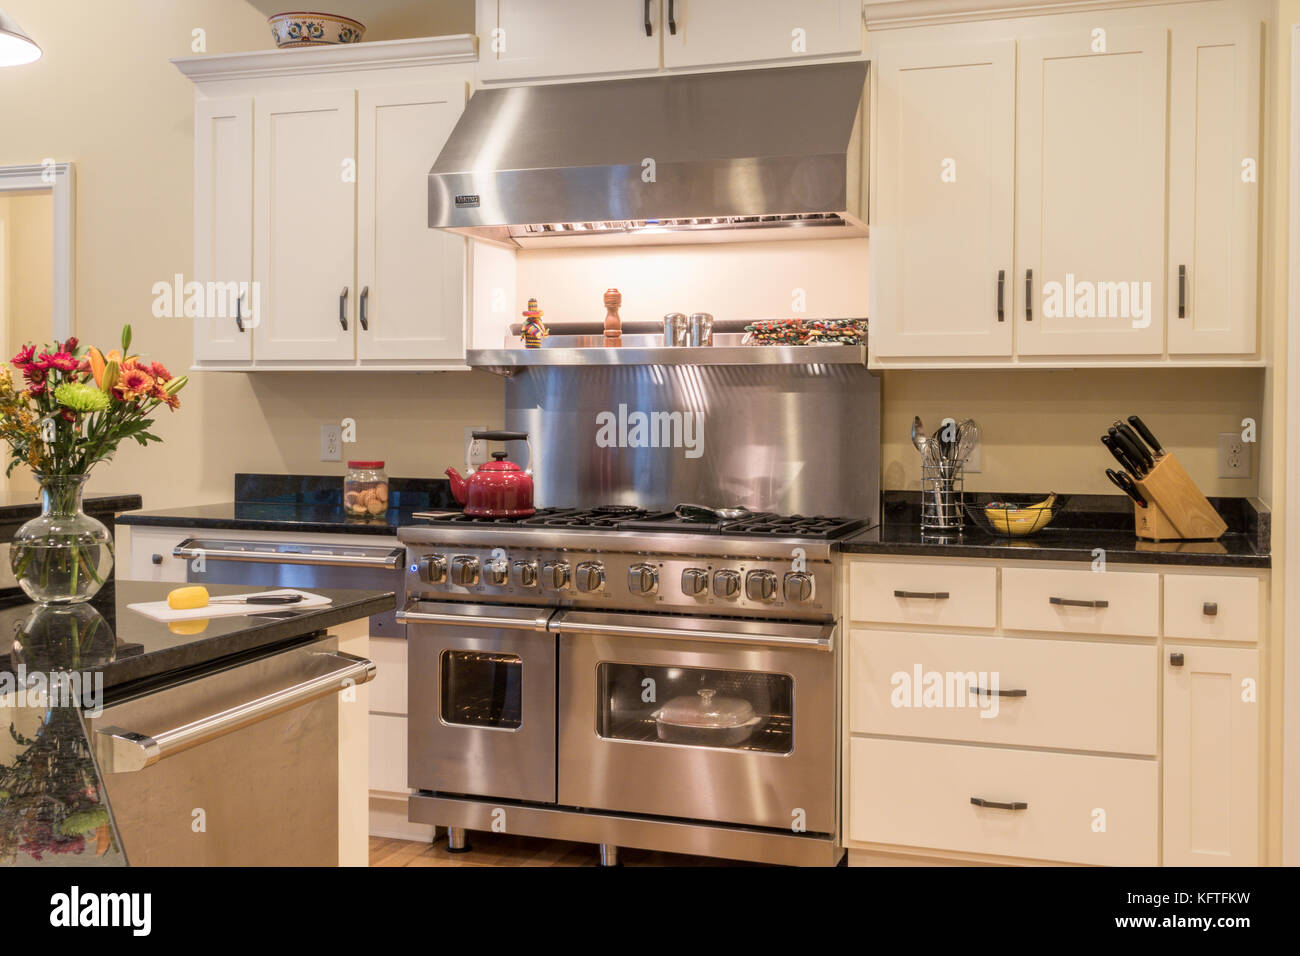 Upscale Residential Kitchen, USA - HDR - Stock Image